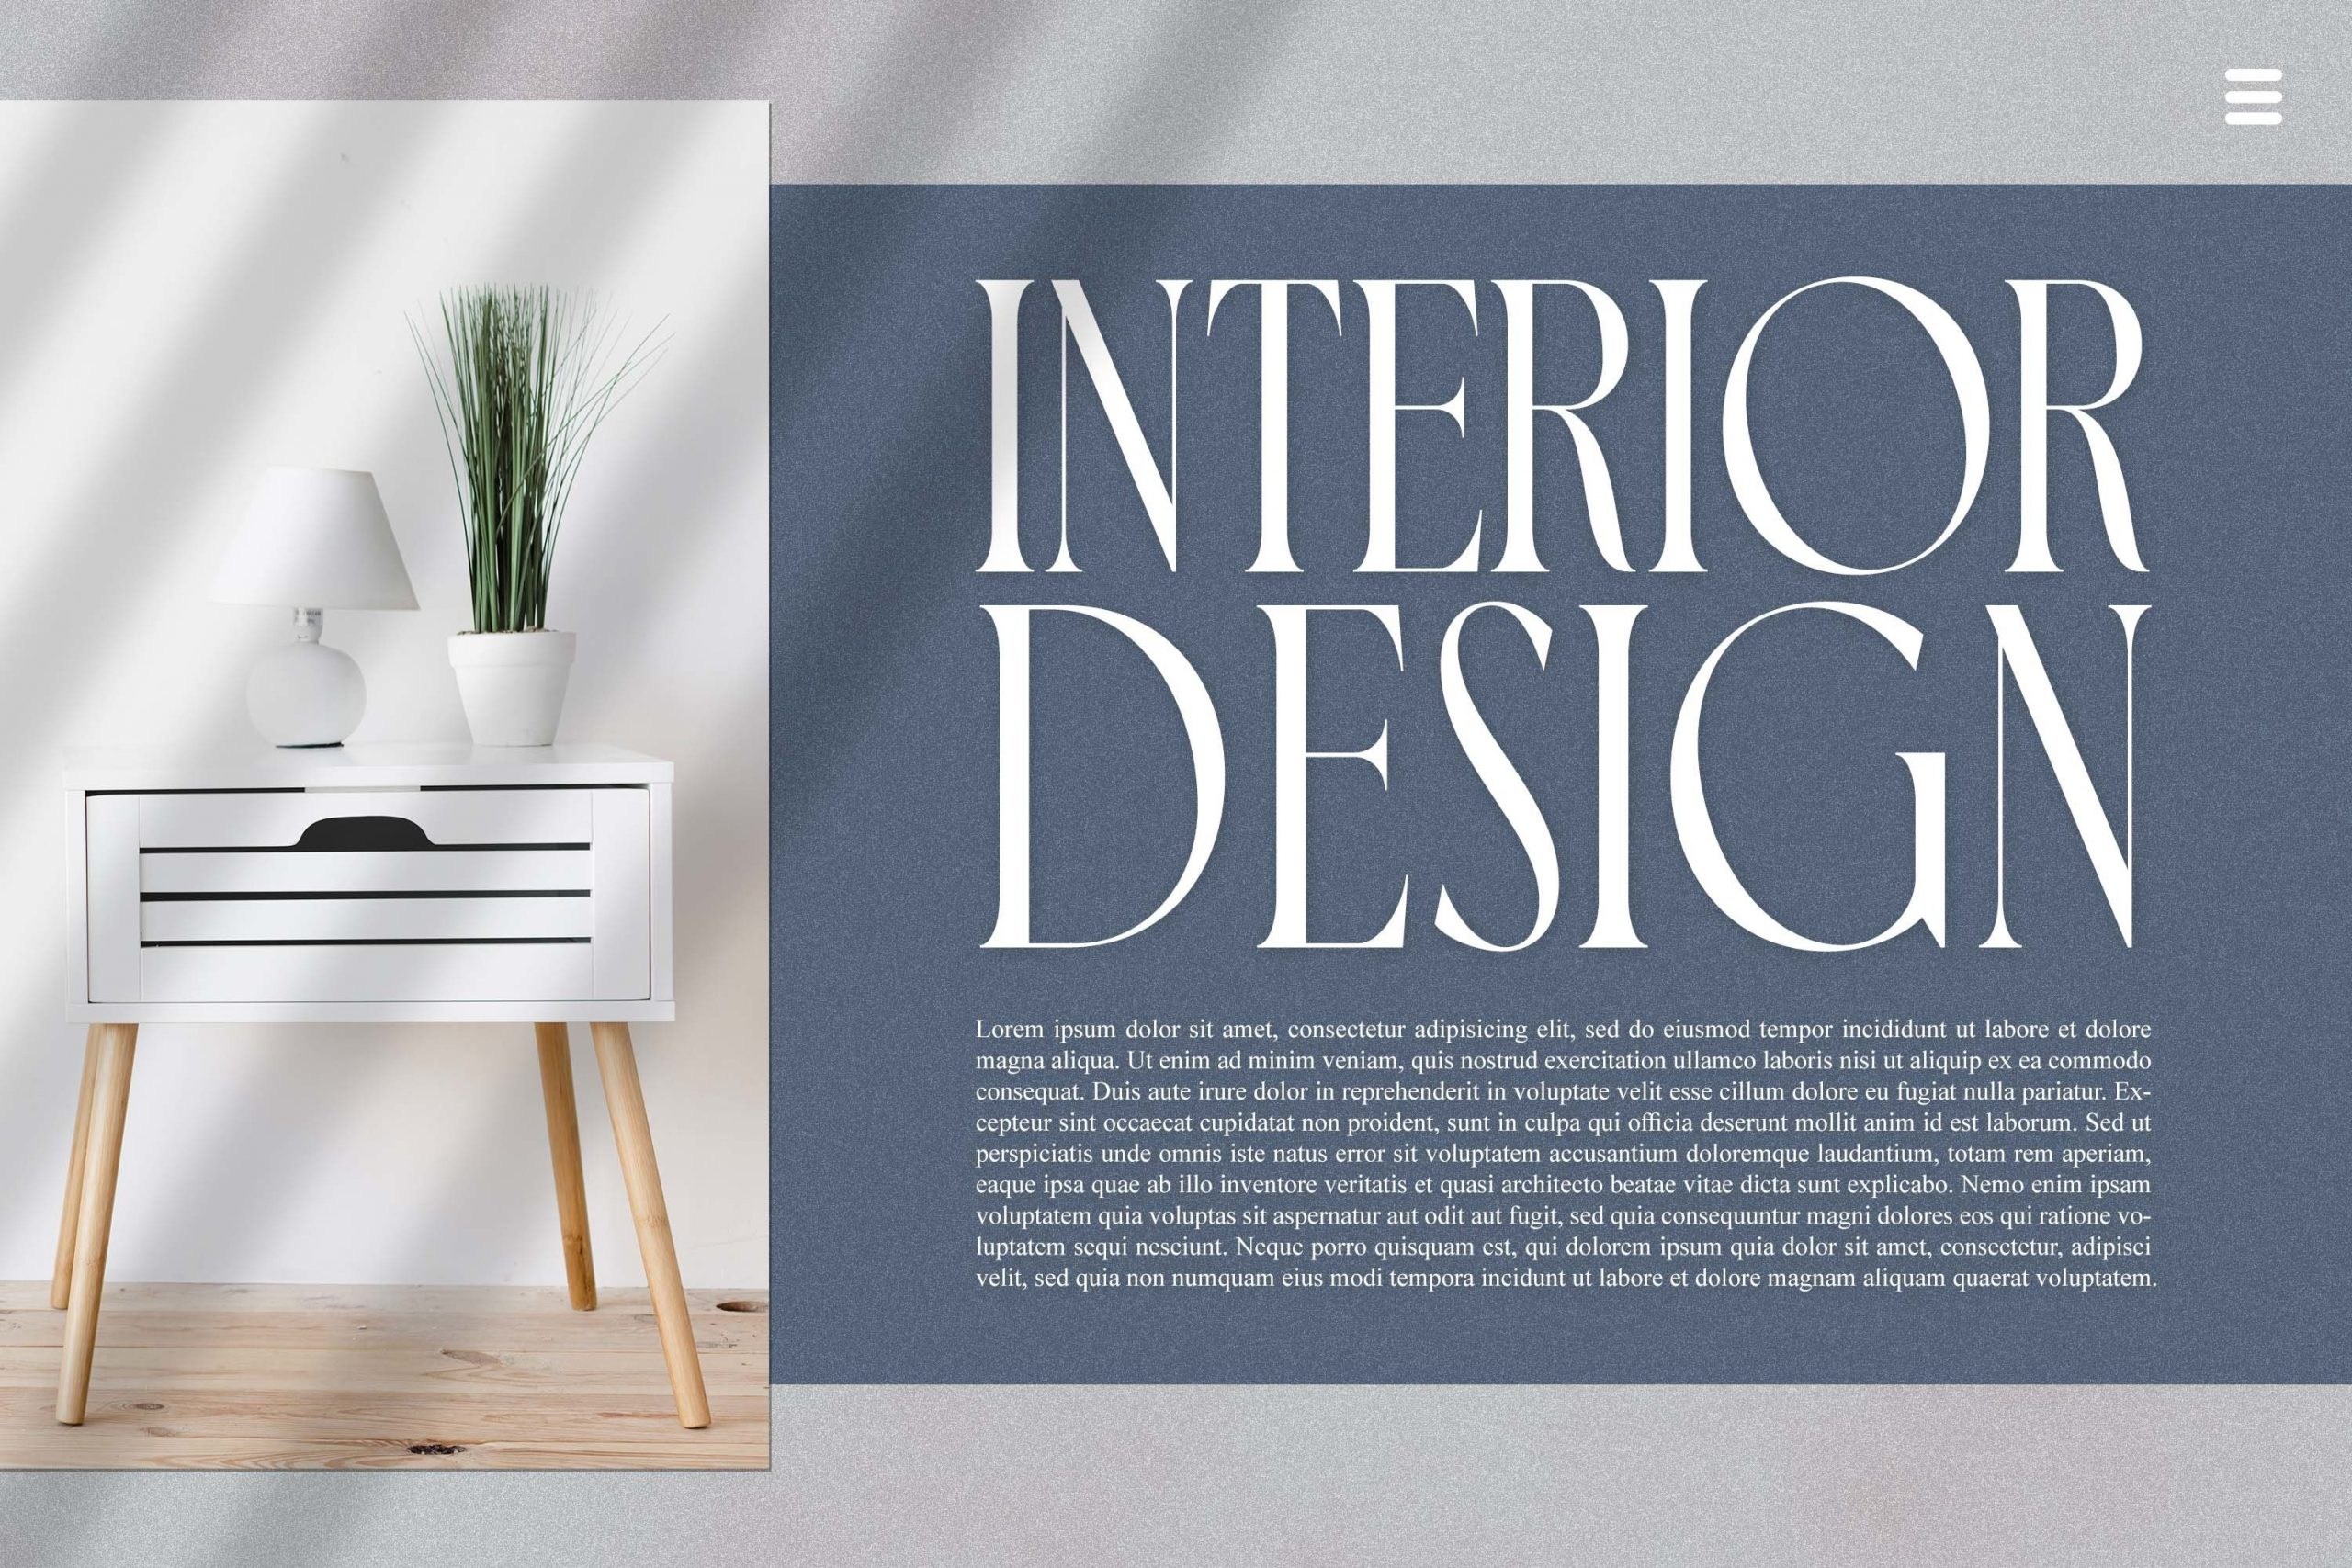 Luxoorea Stylish Display Serif-2